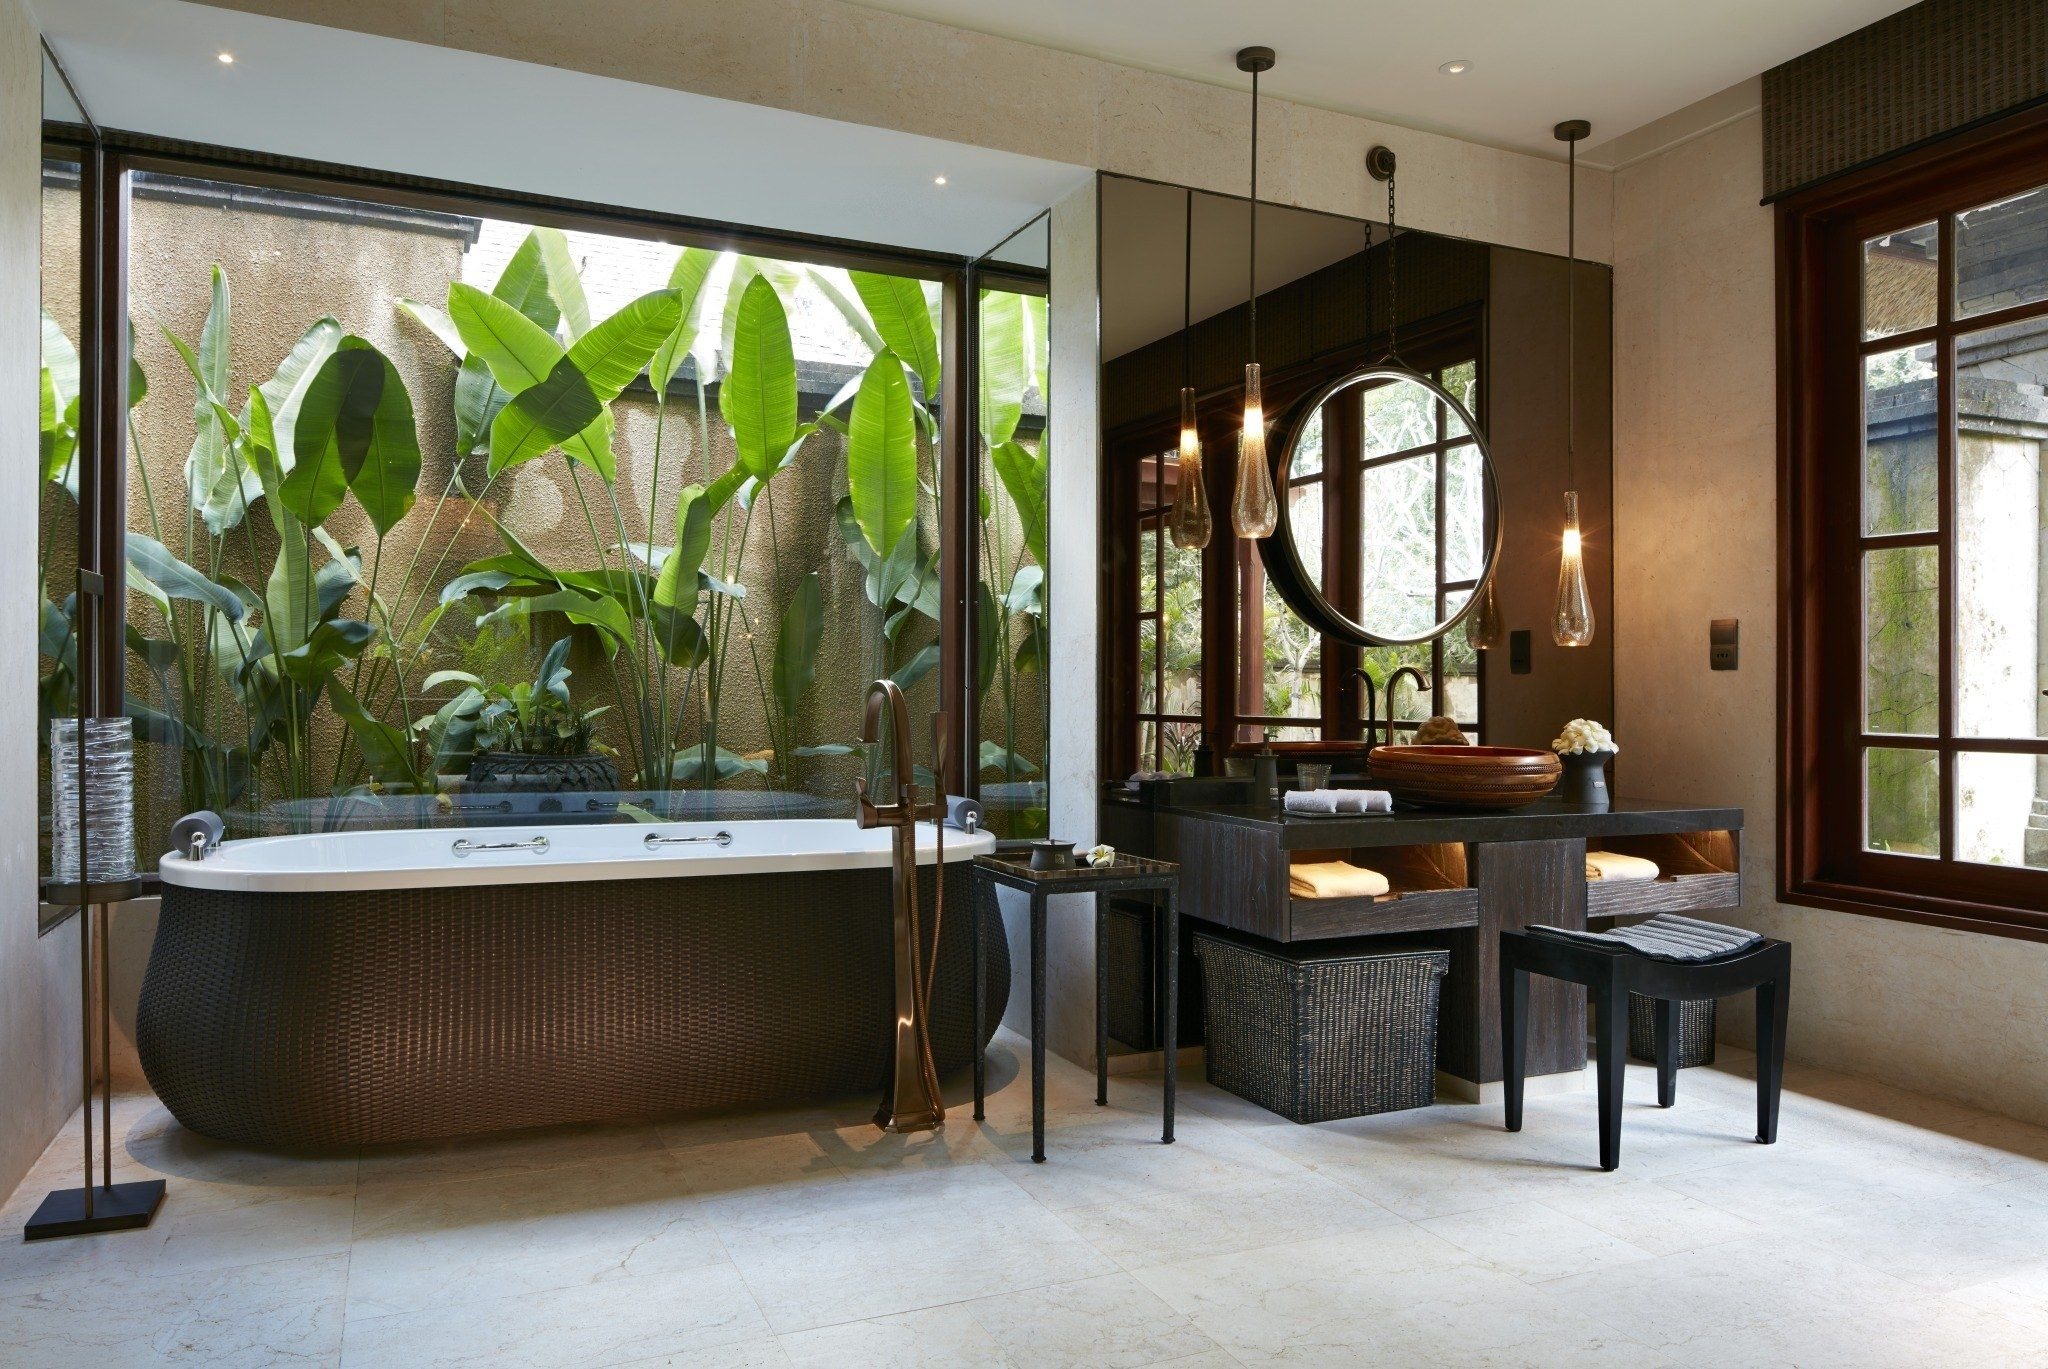 From Venice To Dubai The Worlds Most Luxurious Hotel Bathrooms Photos